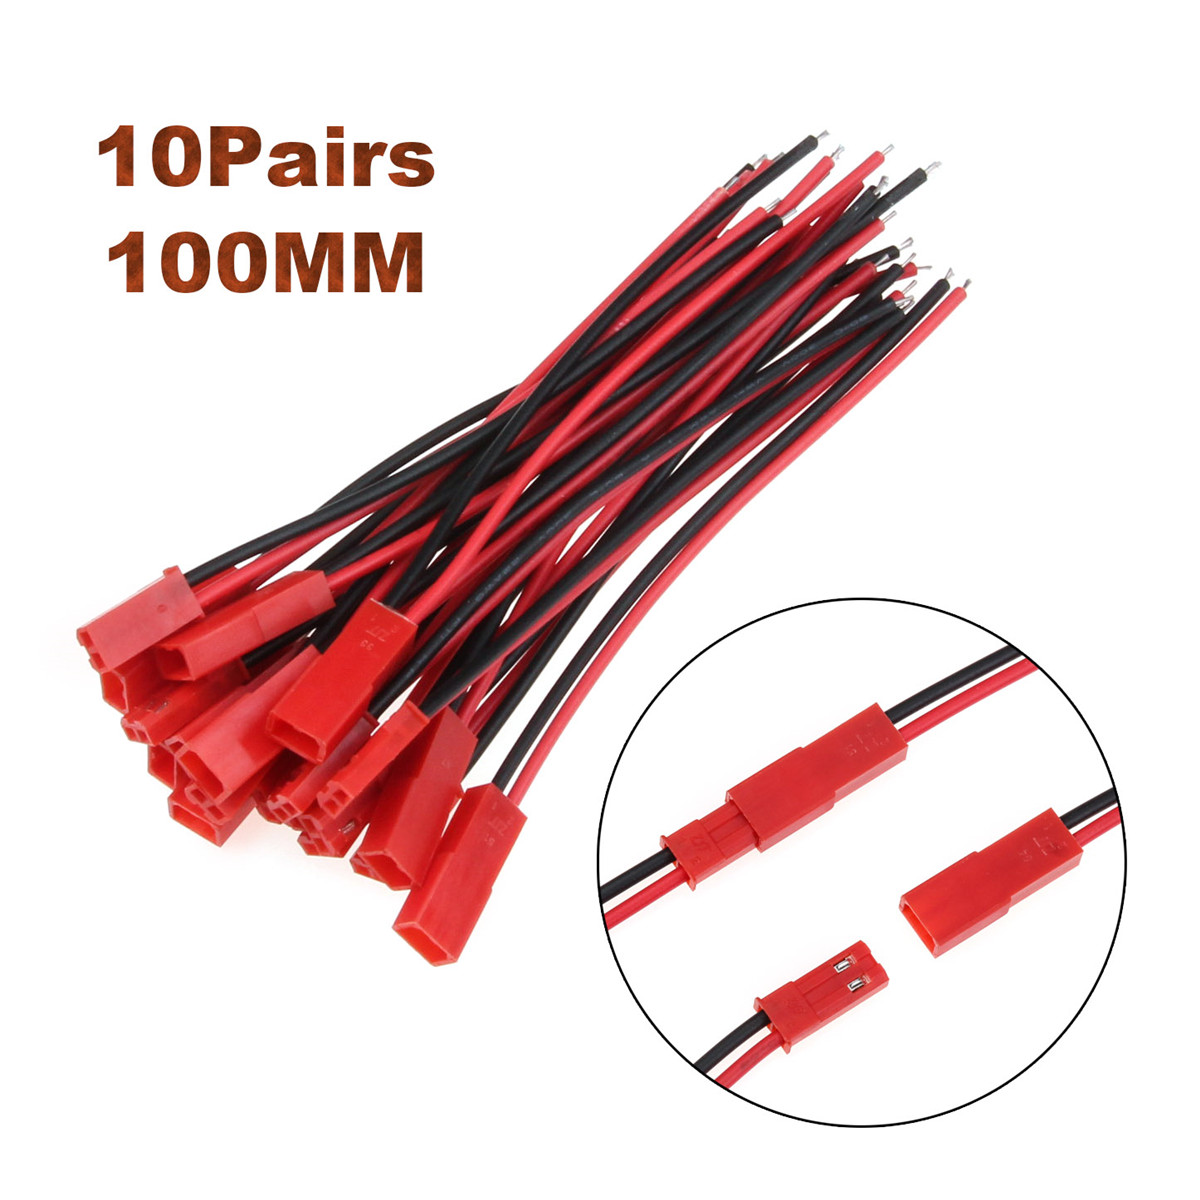 2/10Pairs 100/150mm 2 Pin Connector JST Plug Cable Male/Female For RC BEC Battery Helicopter DIY FPV Drone Quadcopter 10pairs 10cm 15cm jst male to female 20awg 100mm 150mm connector plug cable for rc lipo battery spare part free shipping